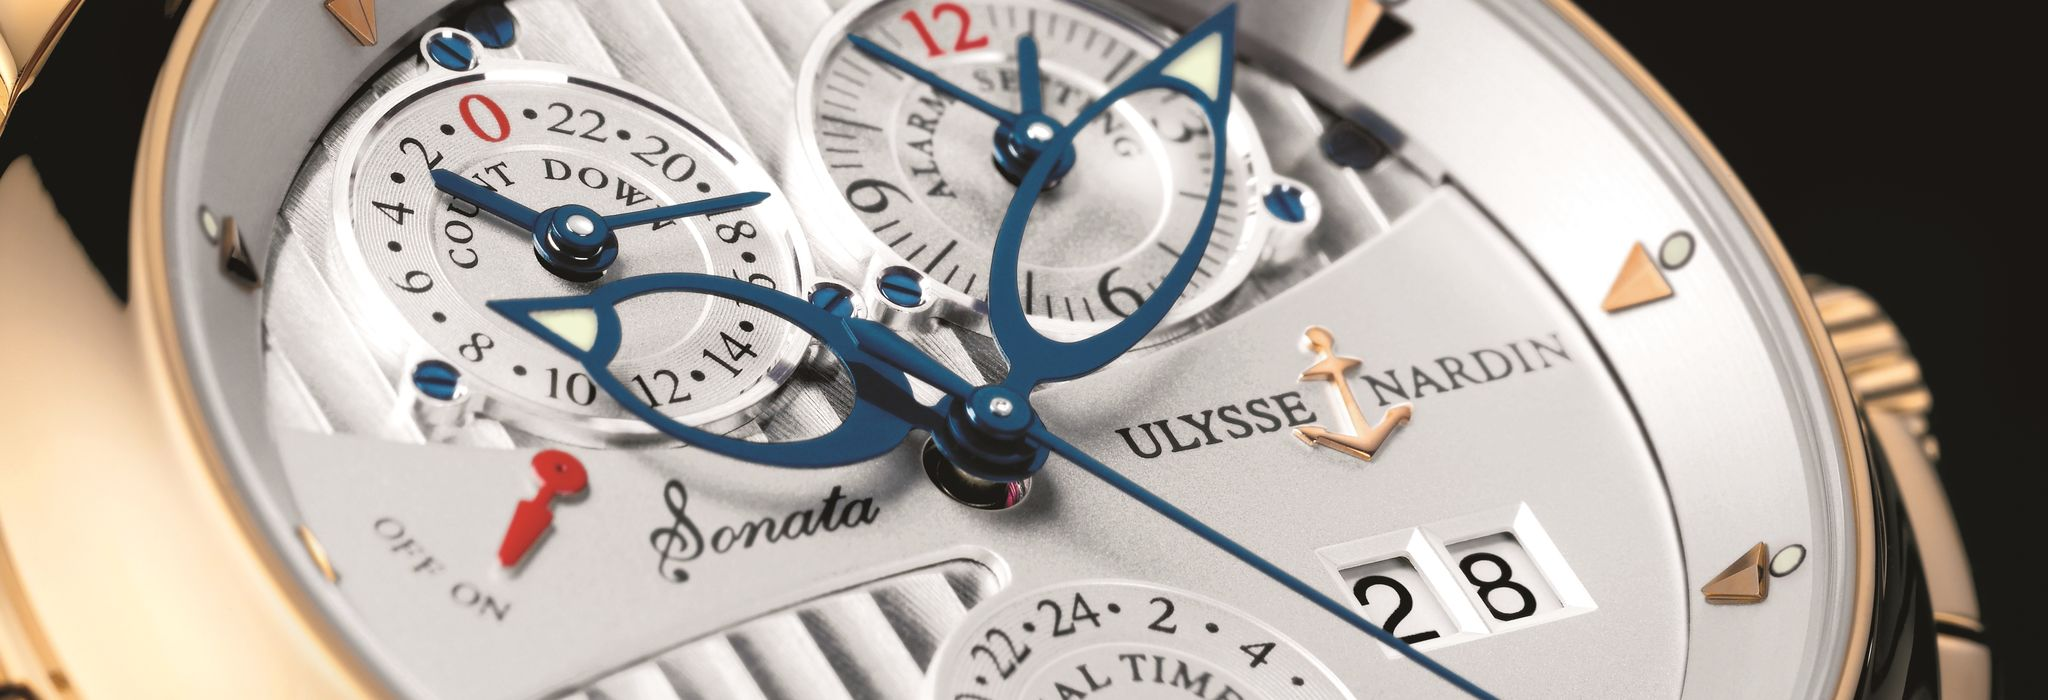 ulysse-nardin-watch